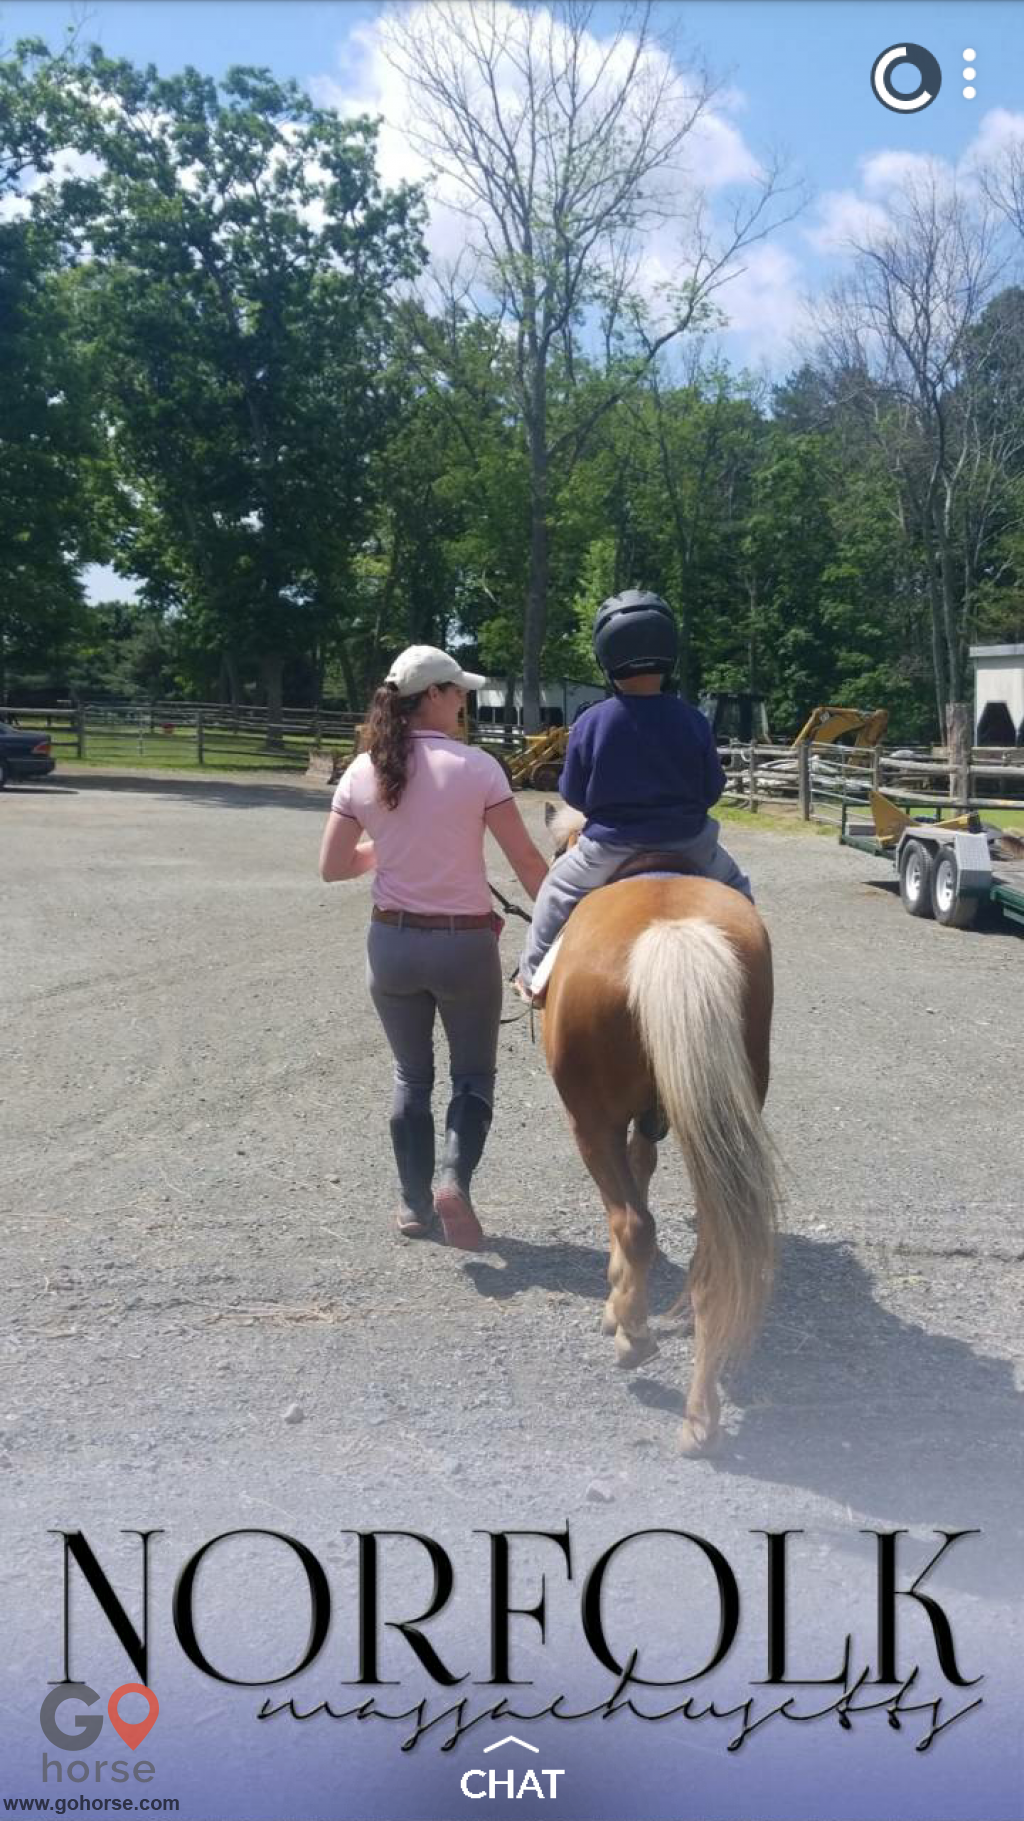 Emerald Equine Horse stables in Wrentham MA 1